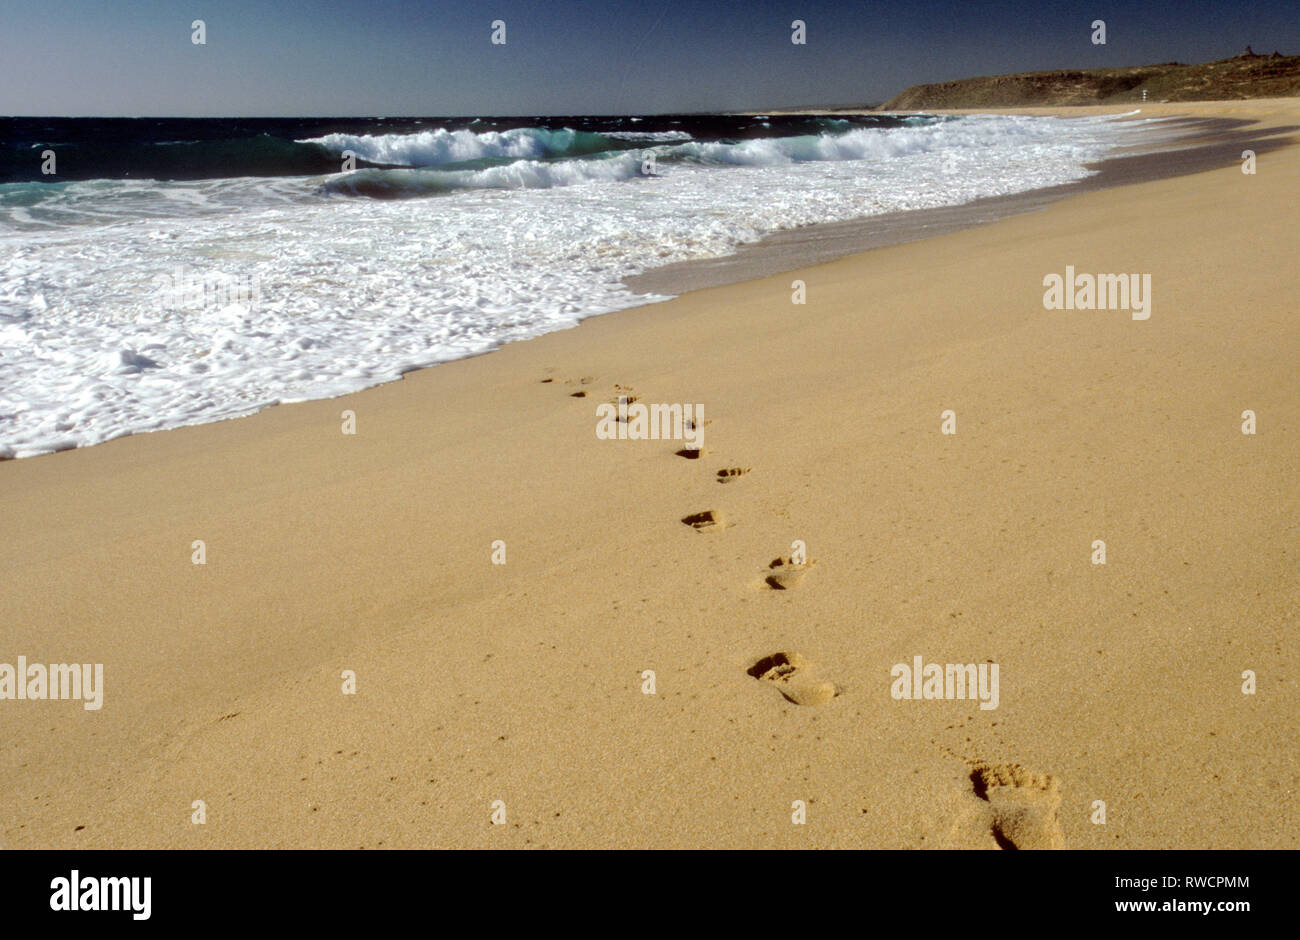 Footprints in the sand vanishing into the surf - Stock Image